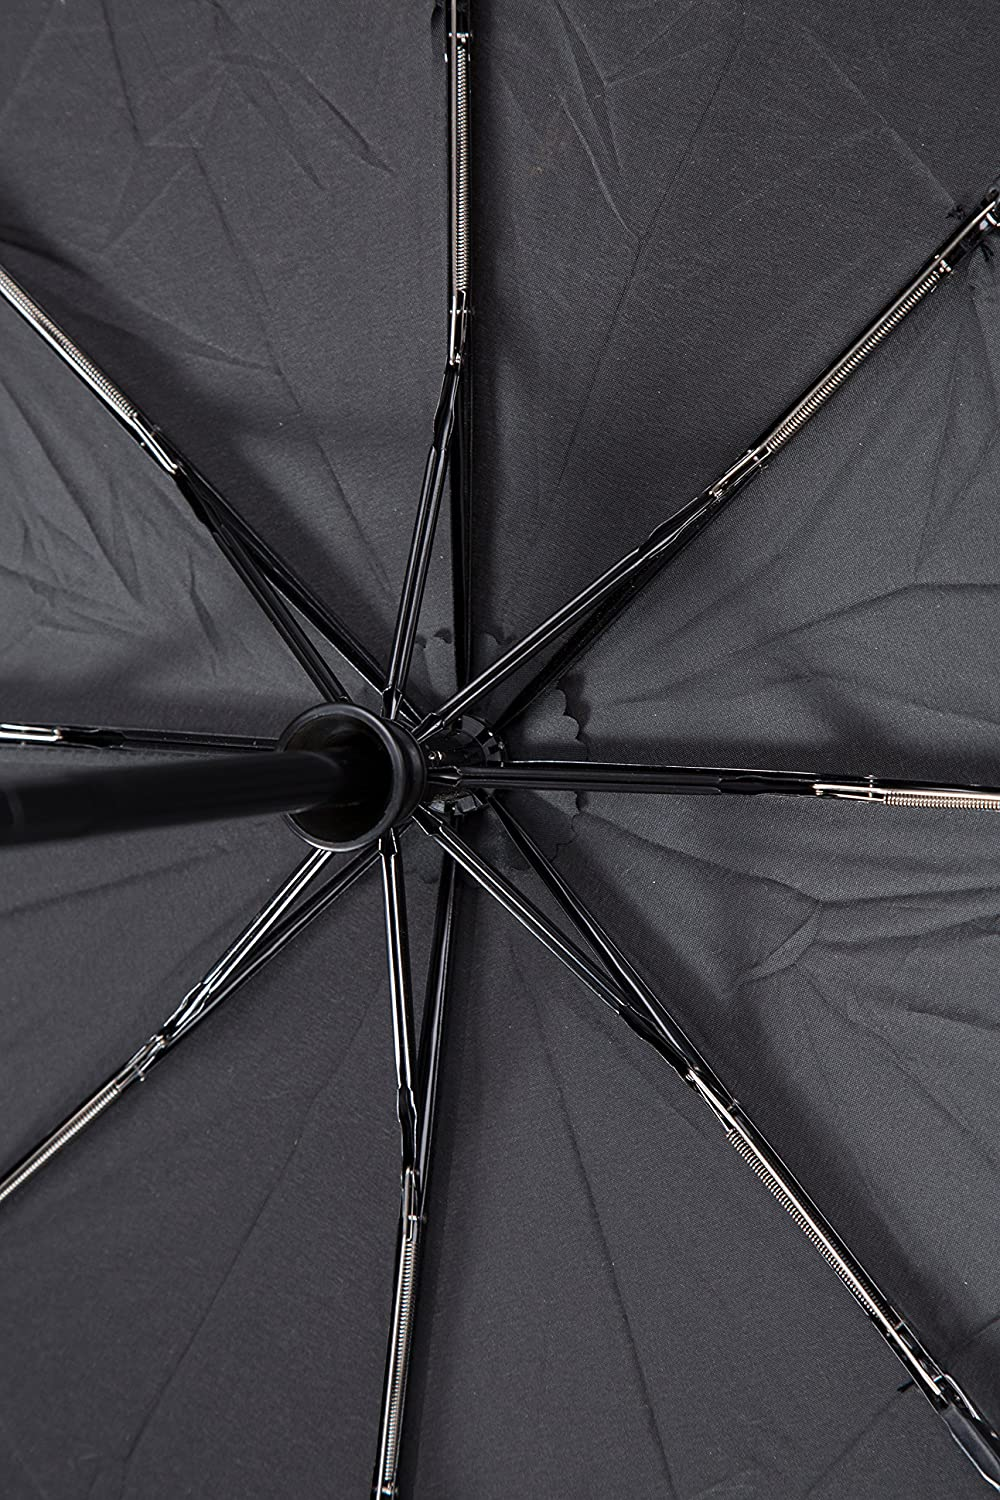 Shock Resistant Garden Umbrella Easy to Use Patio Brolly Stainless Steel Shaft Mountain Warehouse Windproof Umbrella Quick Dry Sun Umbrella For Picnics